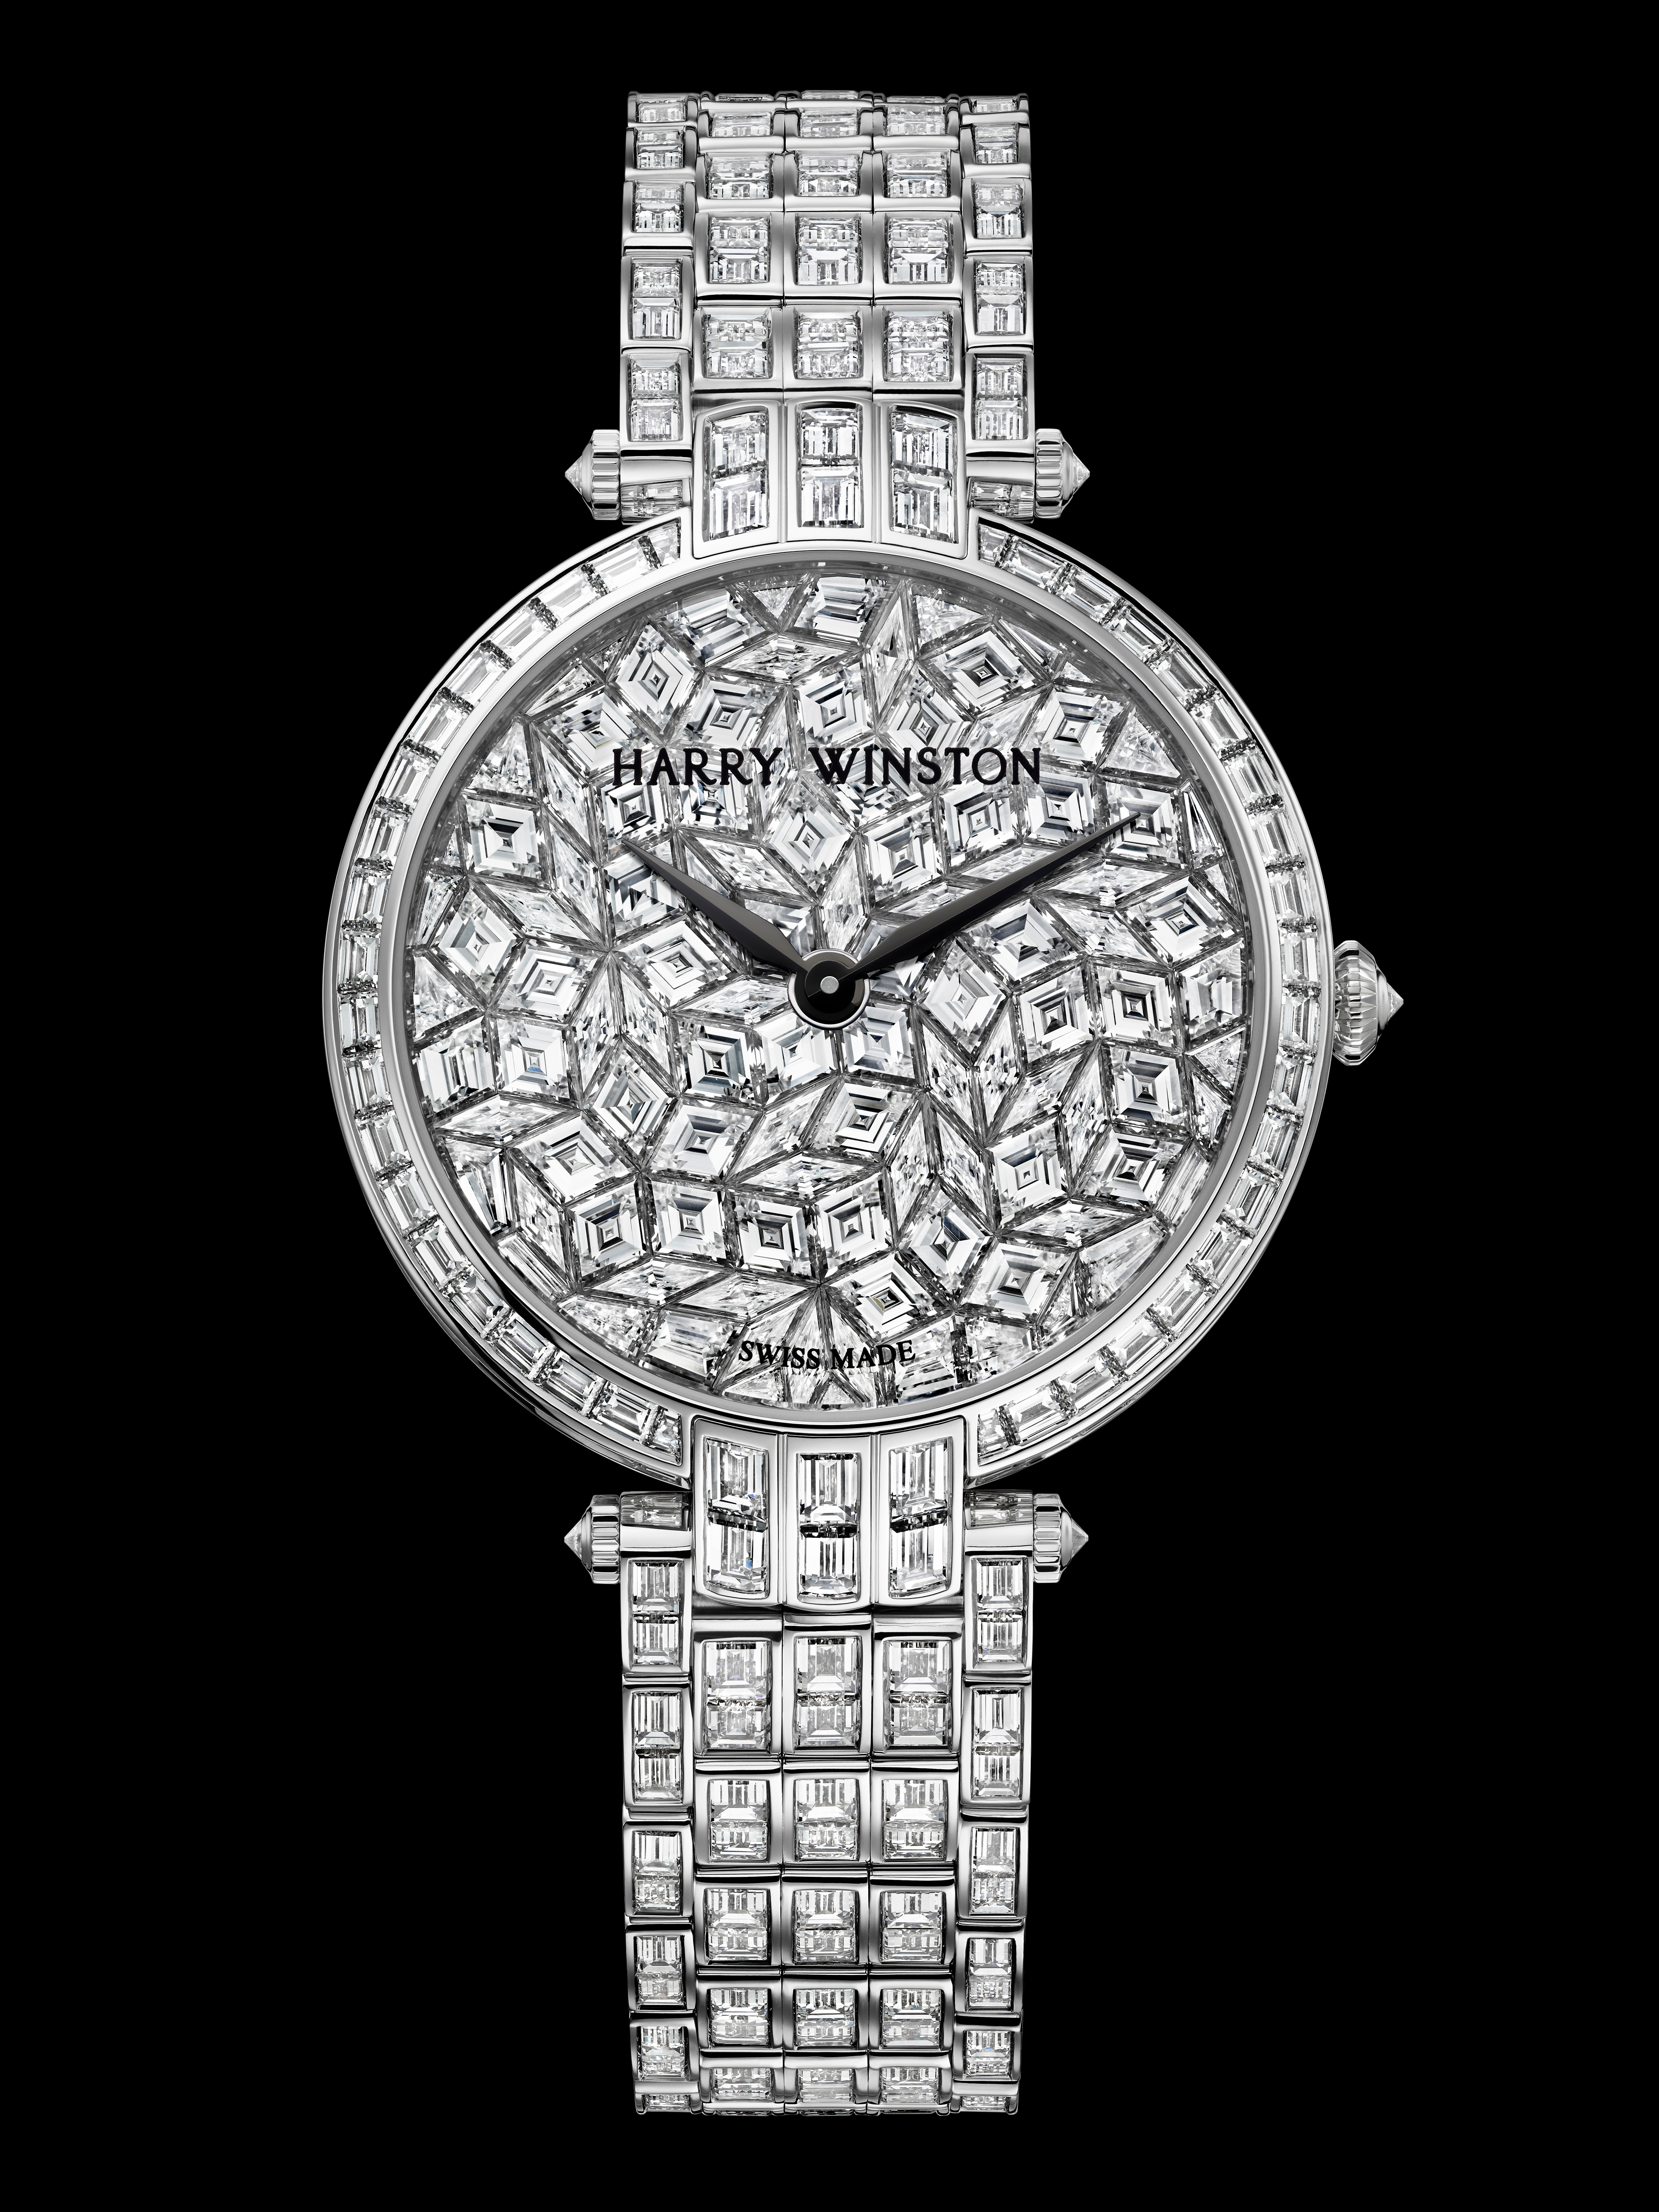 Harry Winston Baselworld 5